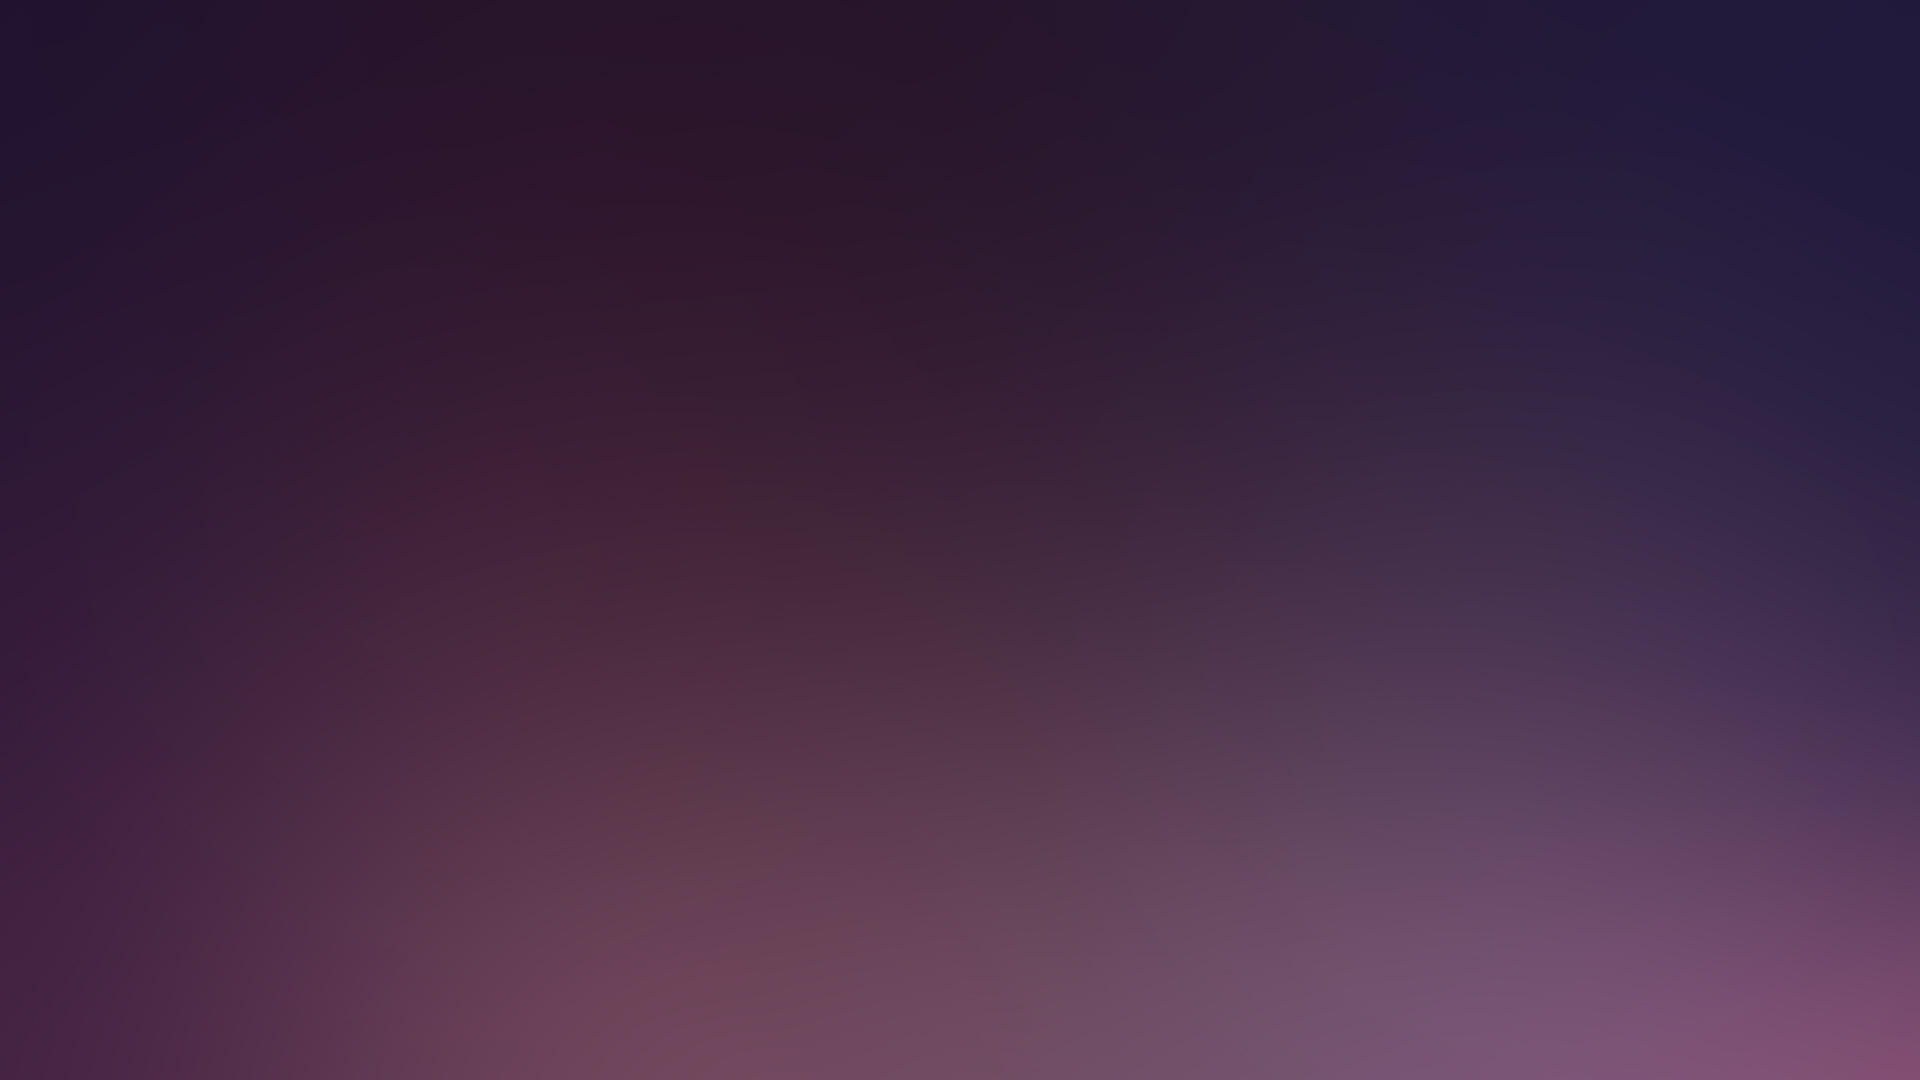 Iphone 1080p Wallpaper 1080p Colorful Gradient Wallpapers By Ktwilson23 On Deviantart